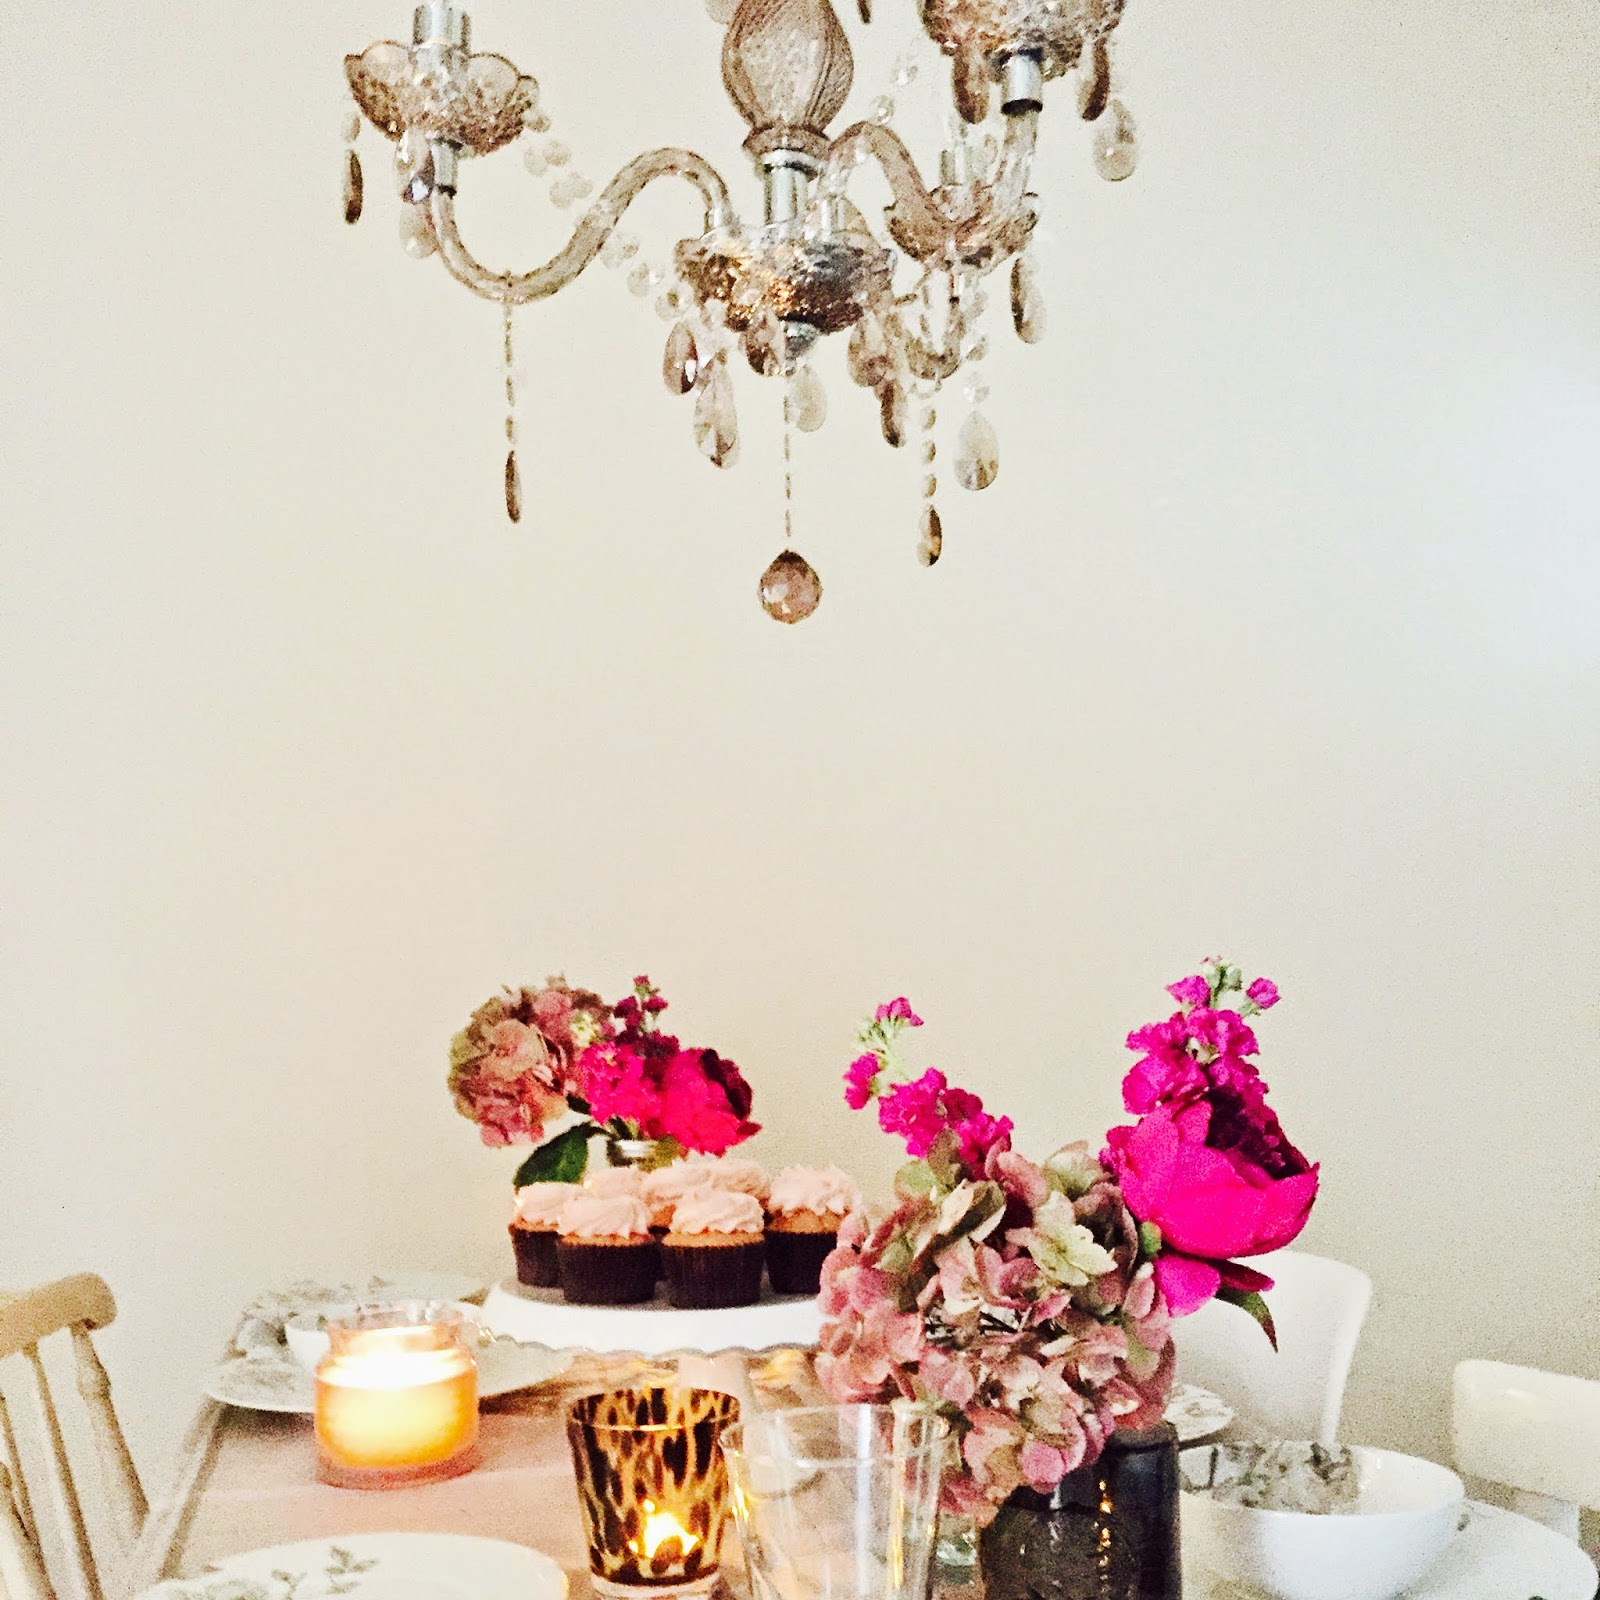 I Have Bought A Few New Pieces For My Own Home And So Thought D Share How Styled Eclectic Romantic Dining Table Using S Sourced At Tesco